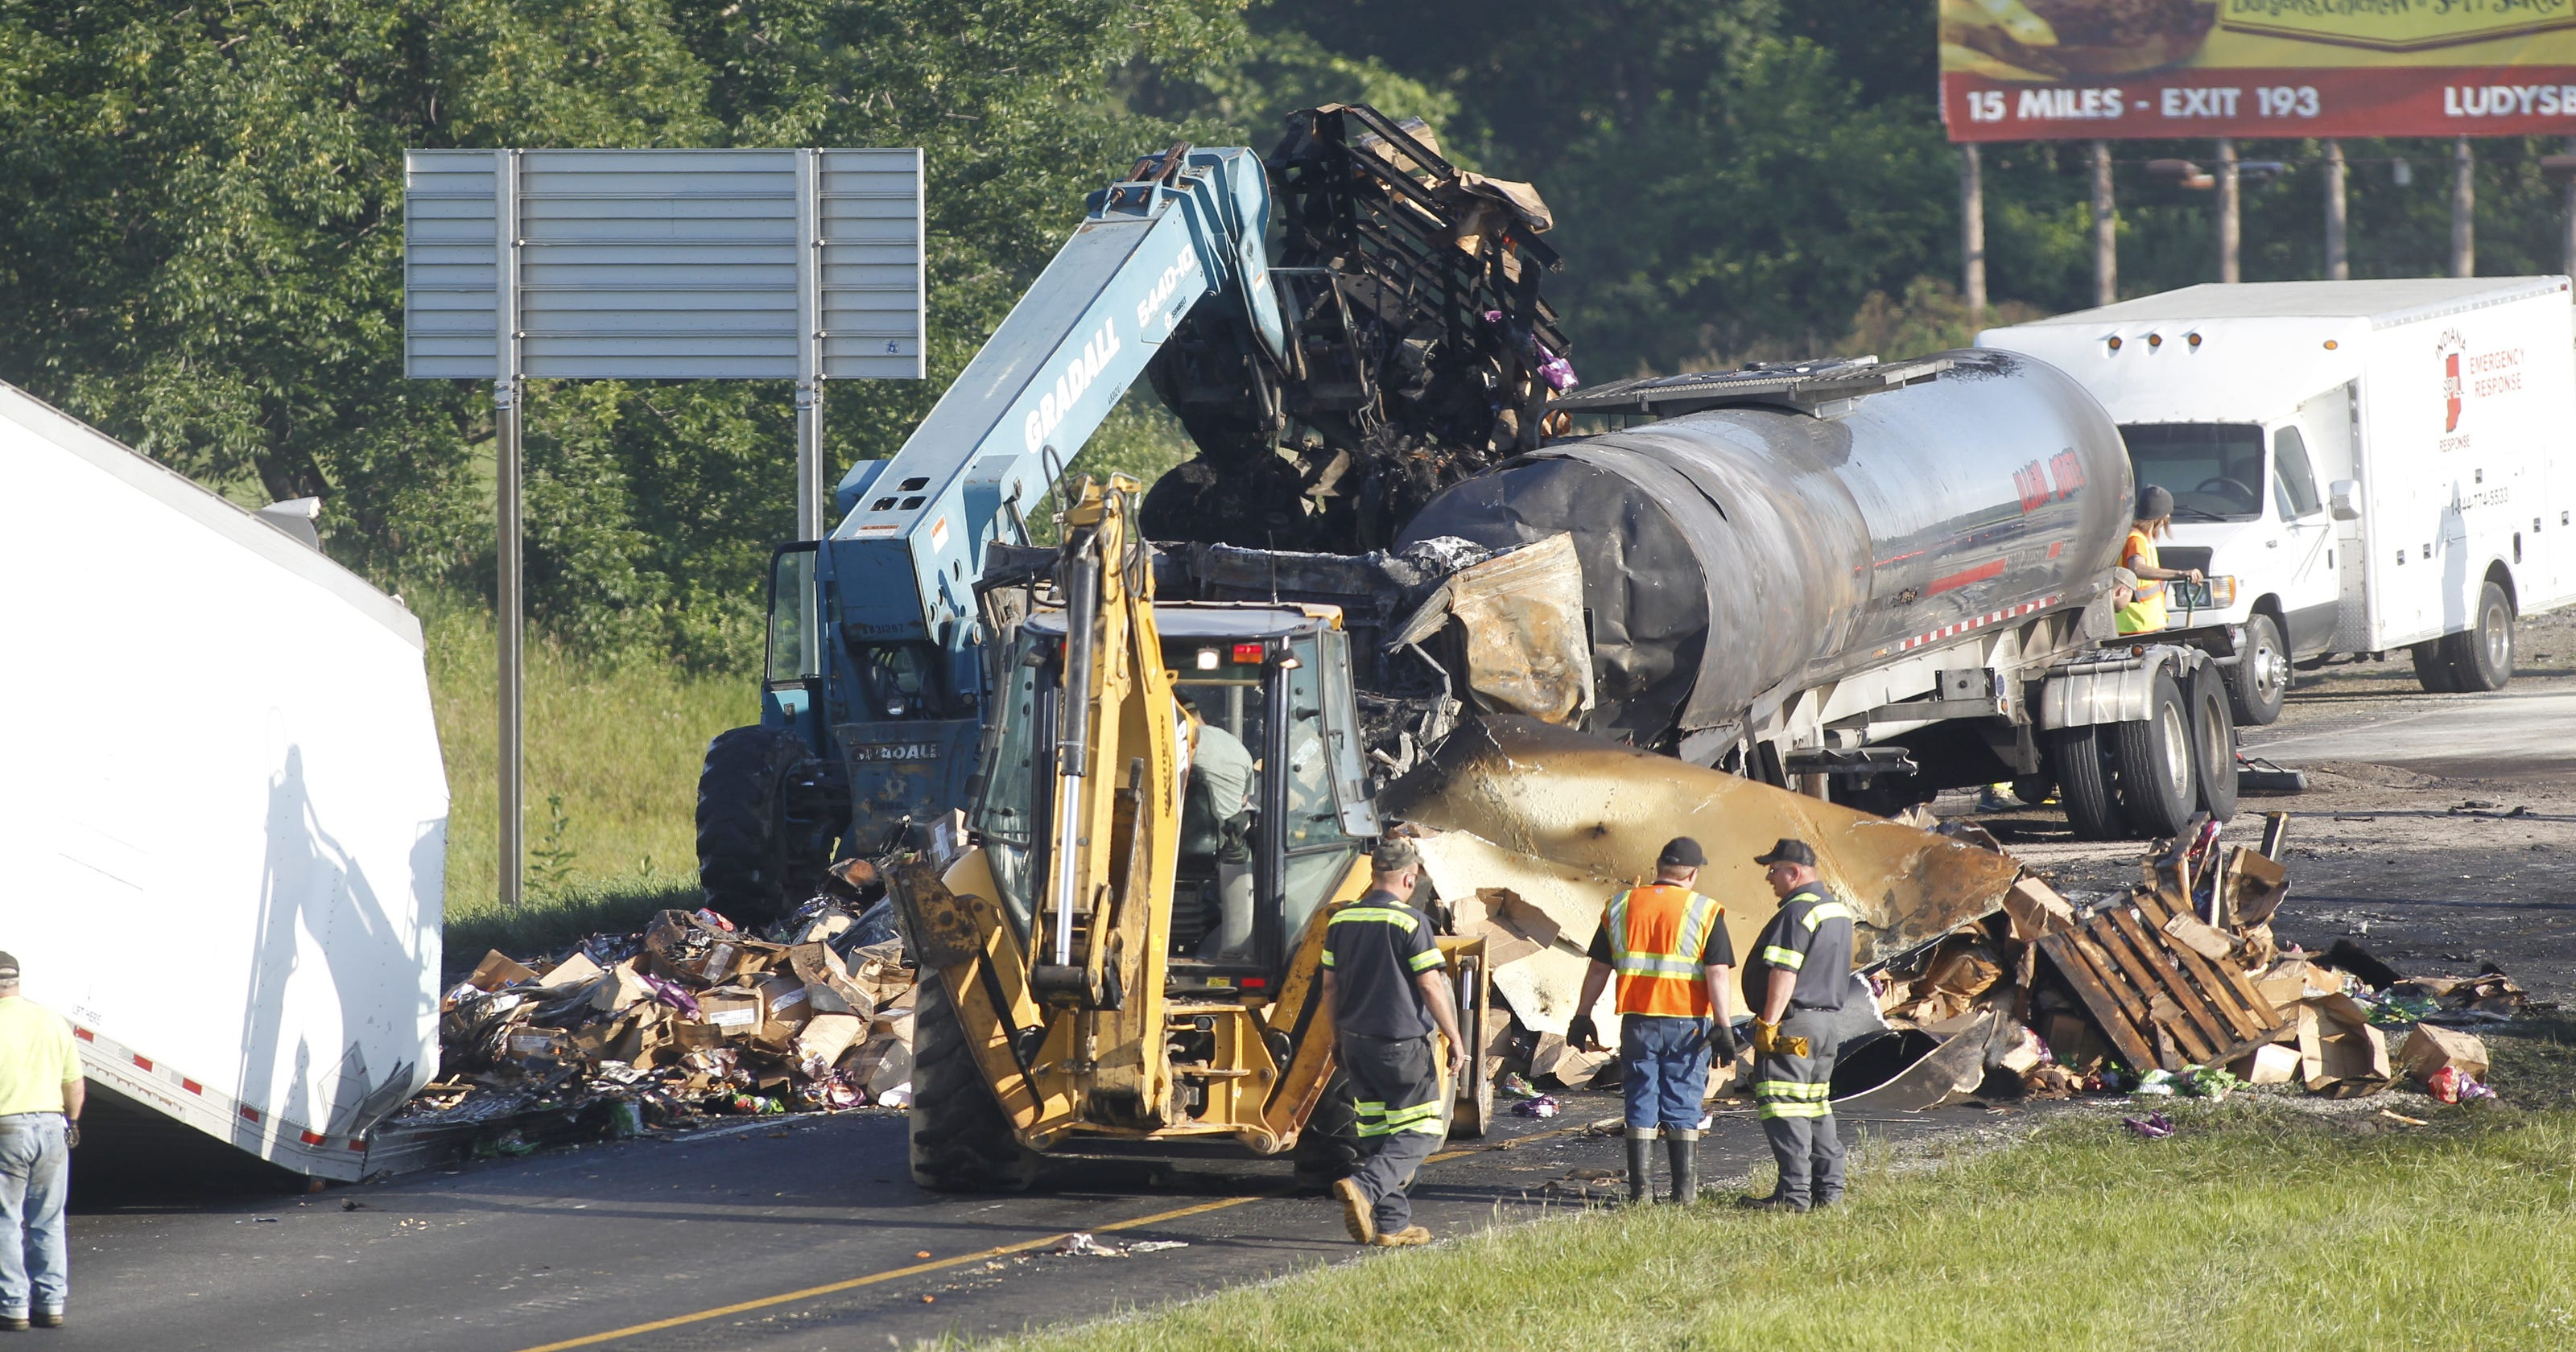 Purdue physicist among 5 killed in fiery I-65 crash